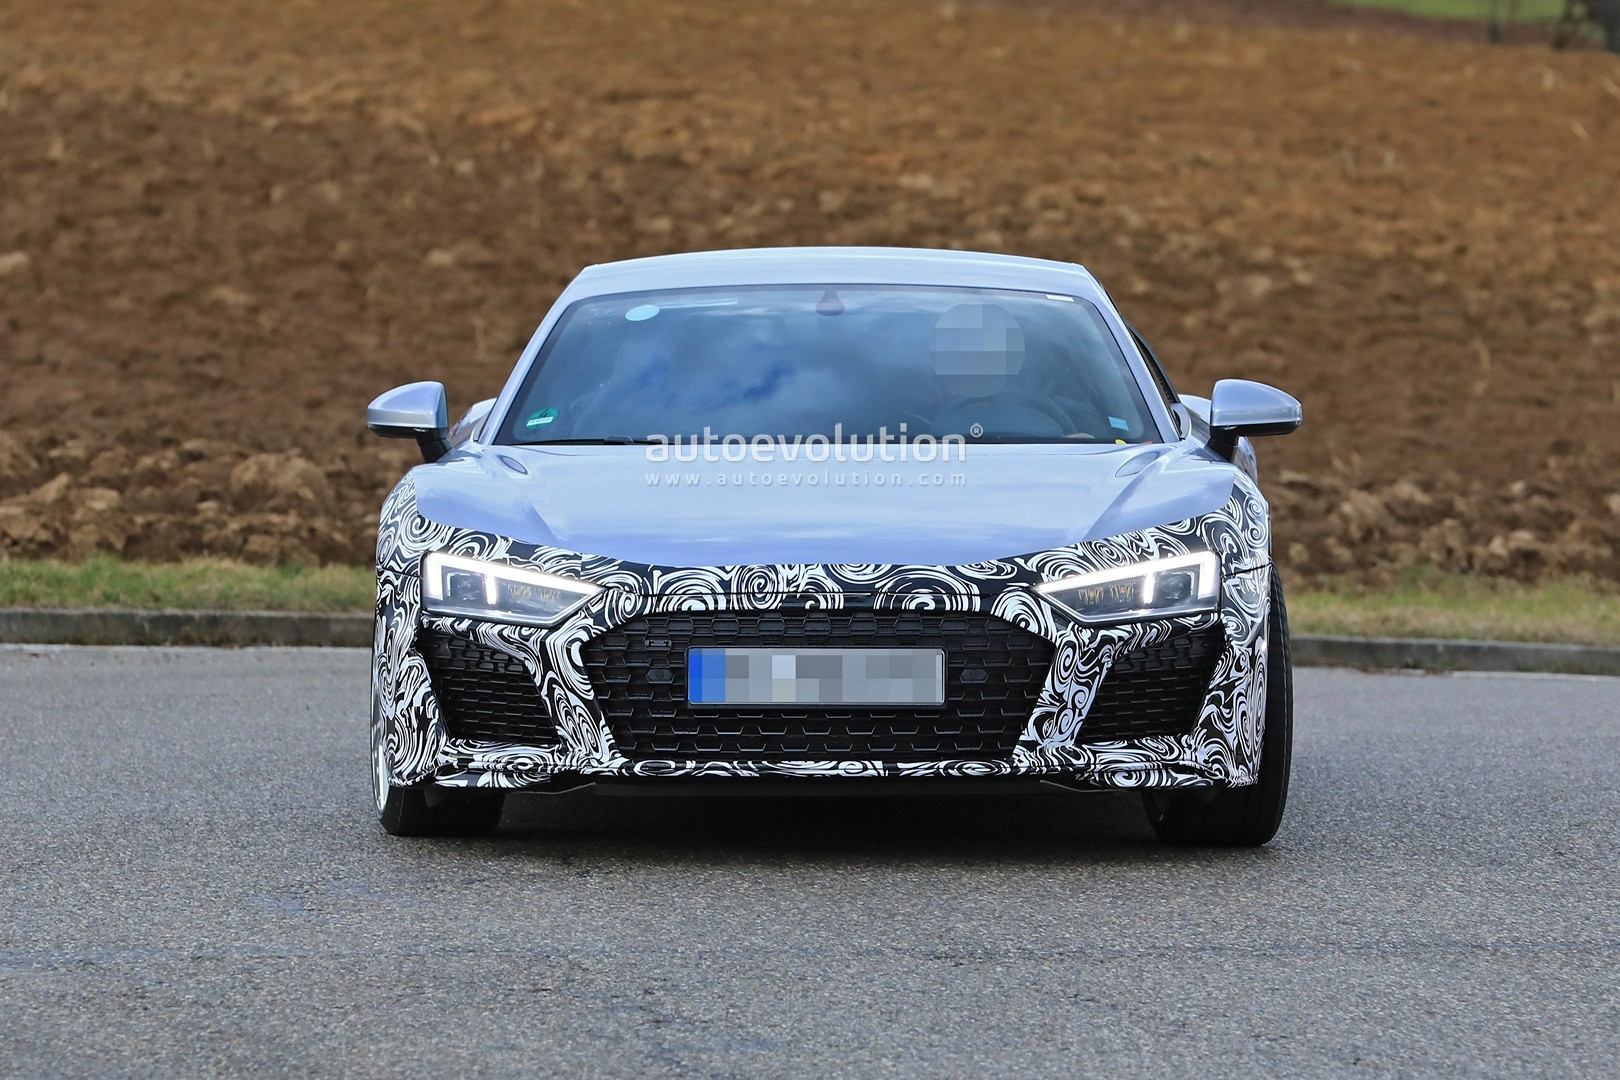 2019 Audi R8 V6 Rumored To Debut At 2018 New York Auto